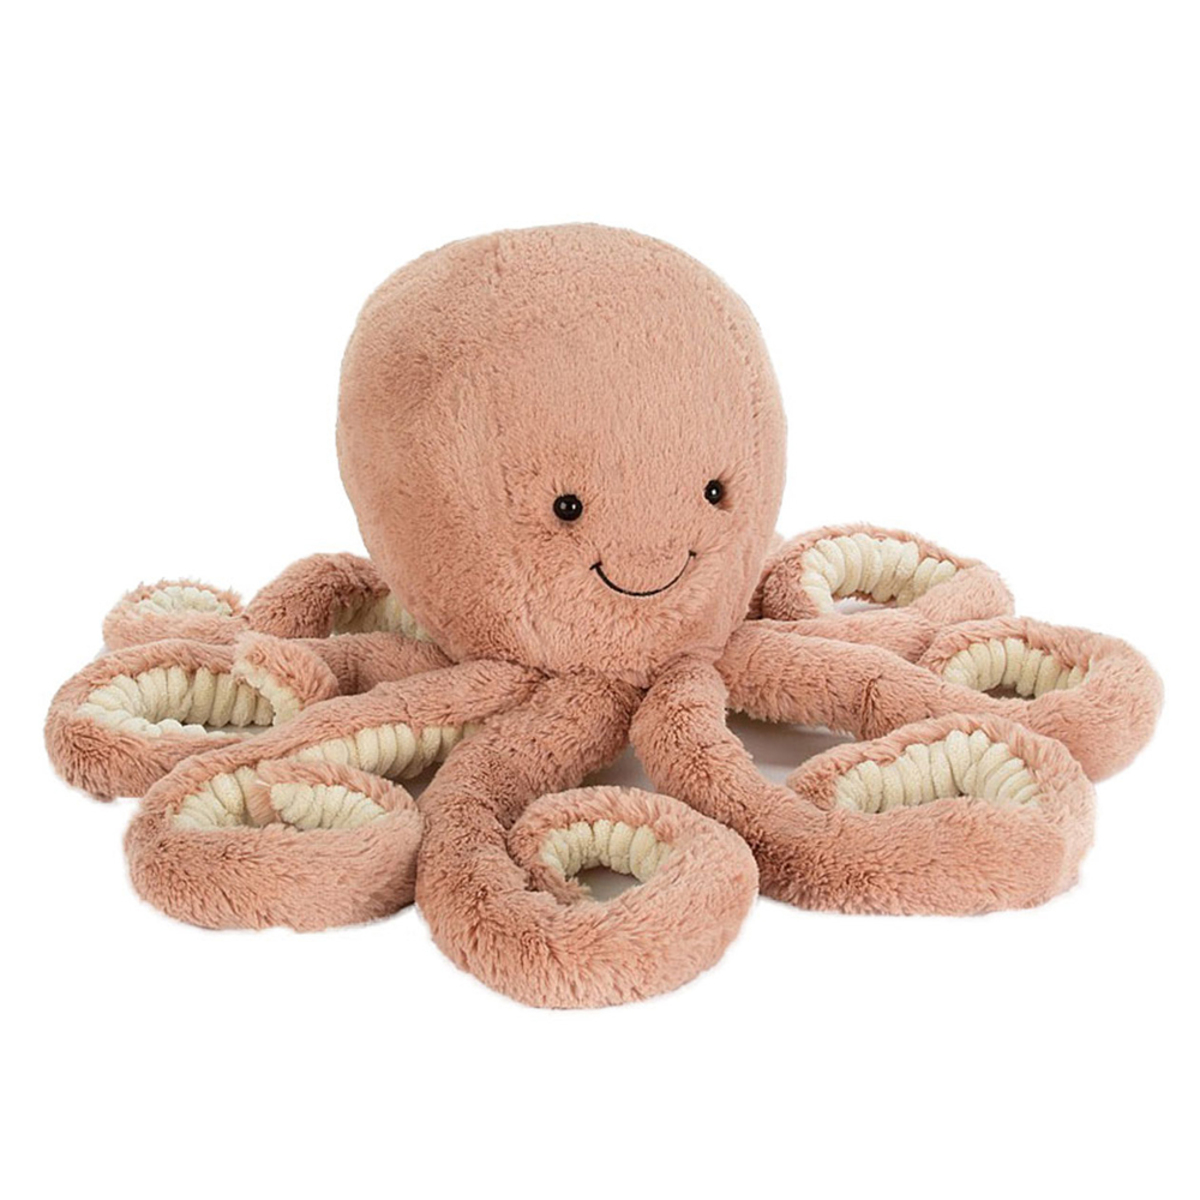 Peluche Odell Octopus - Small Odell Octopus - Small